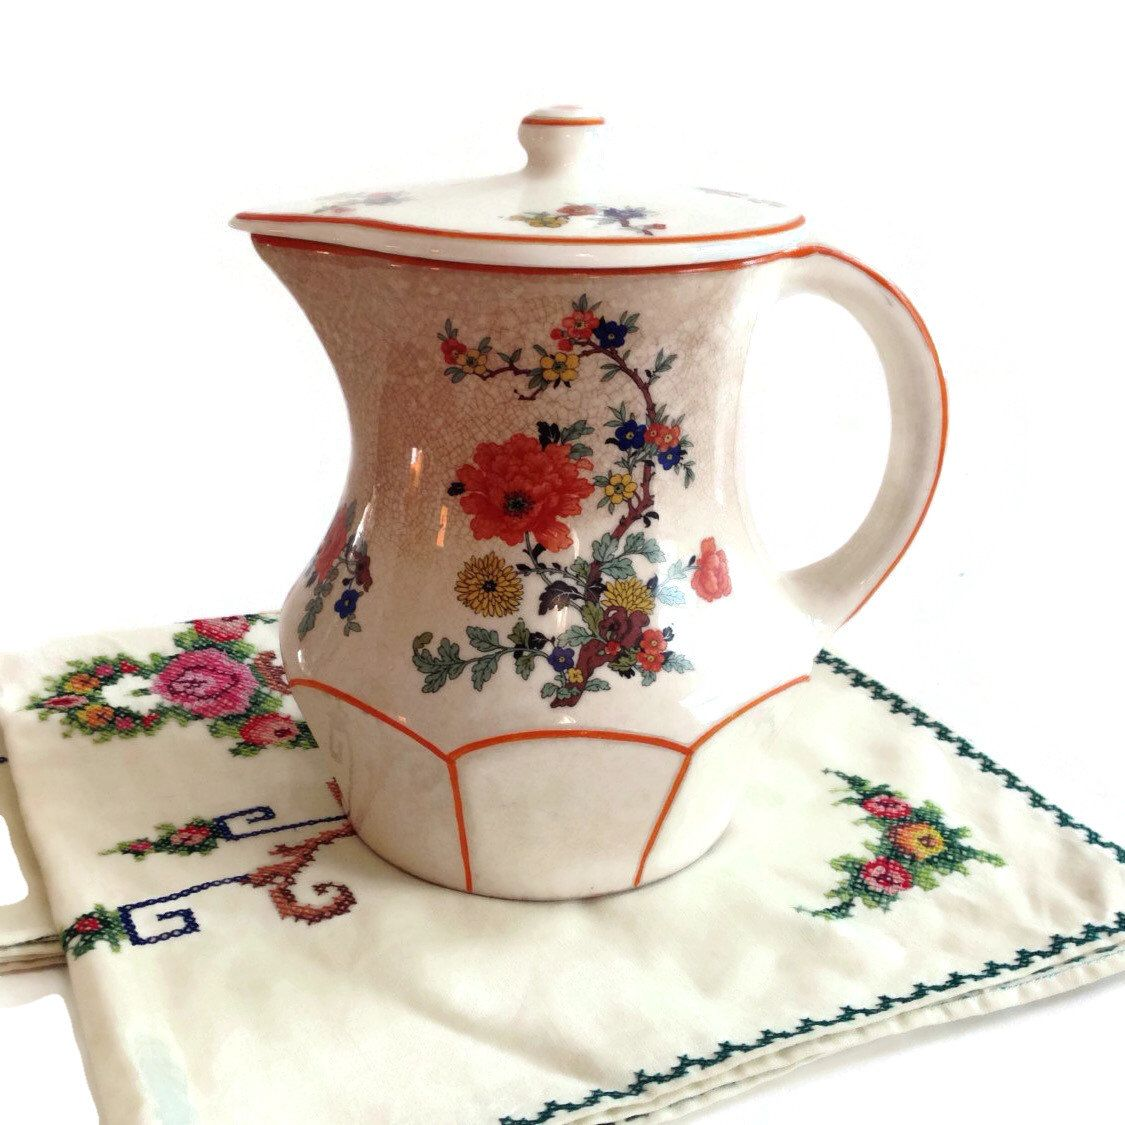 Us pitcher teapot coffee pot with lid floral design orange trim